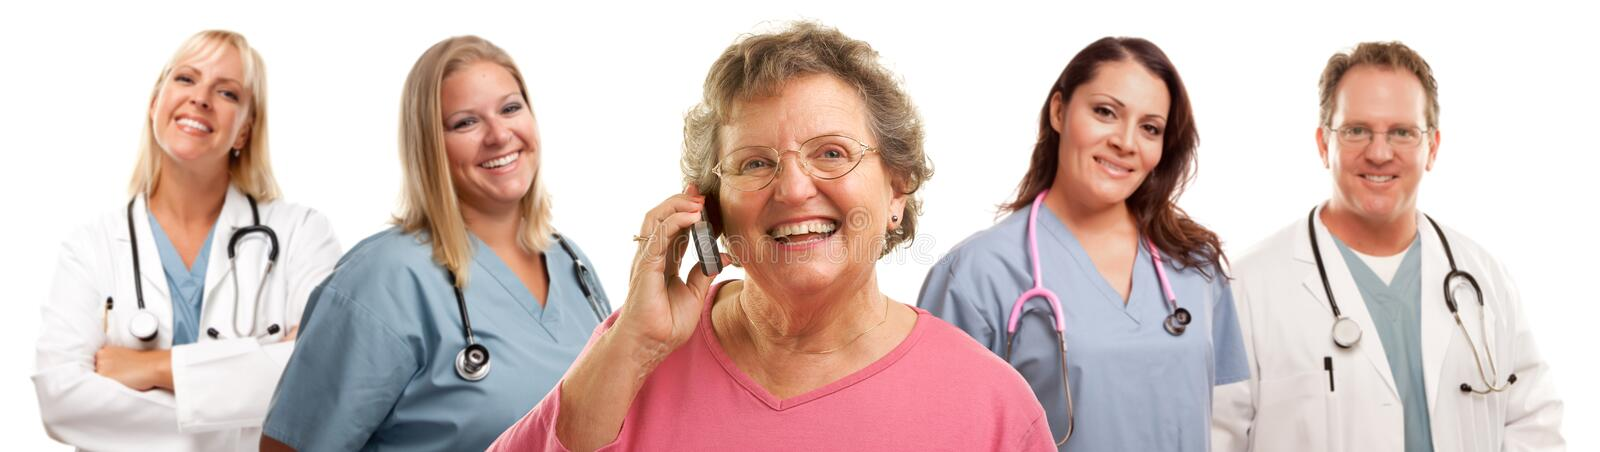 Senior Woman Using Cell Phone and Doctors Behind stock image